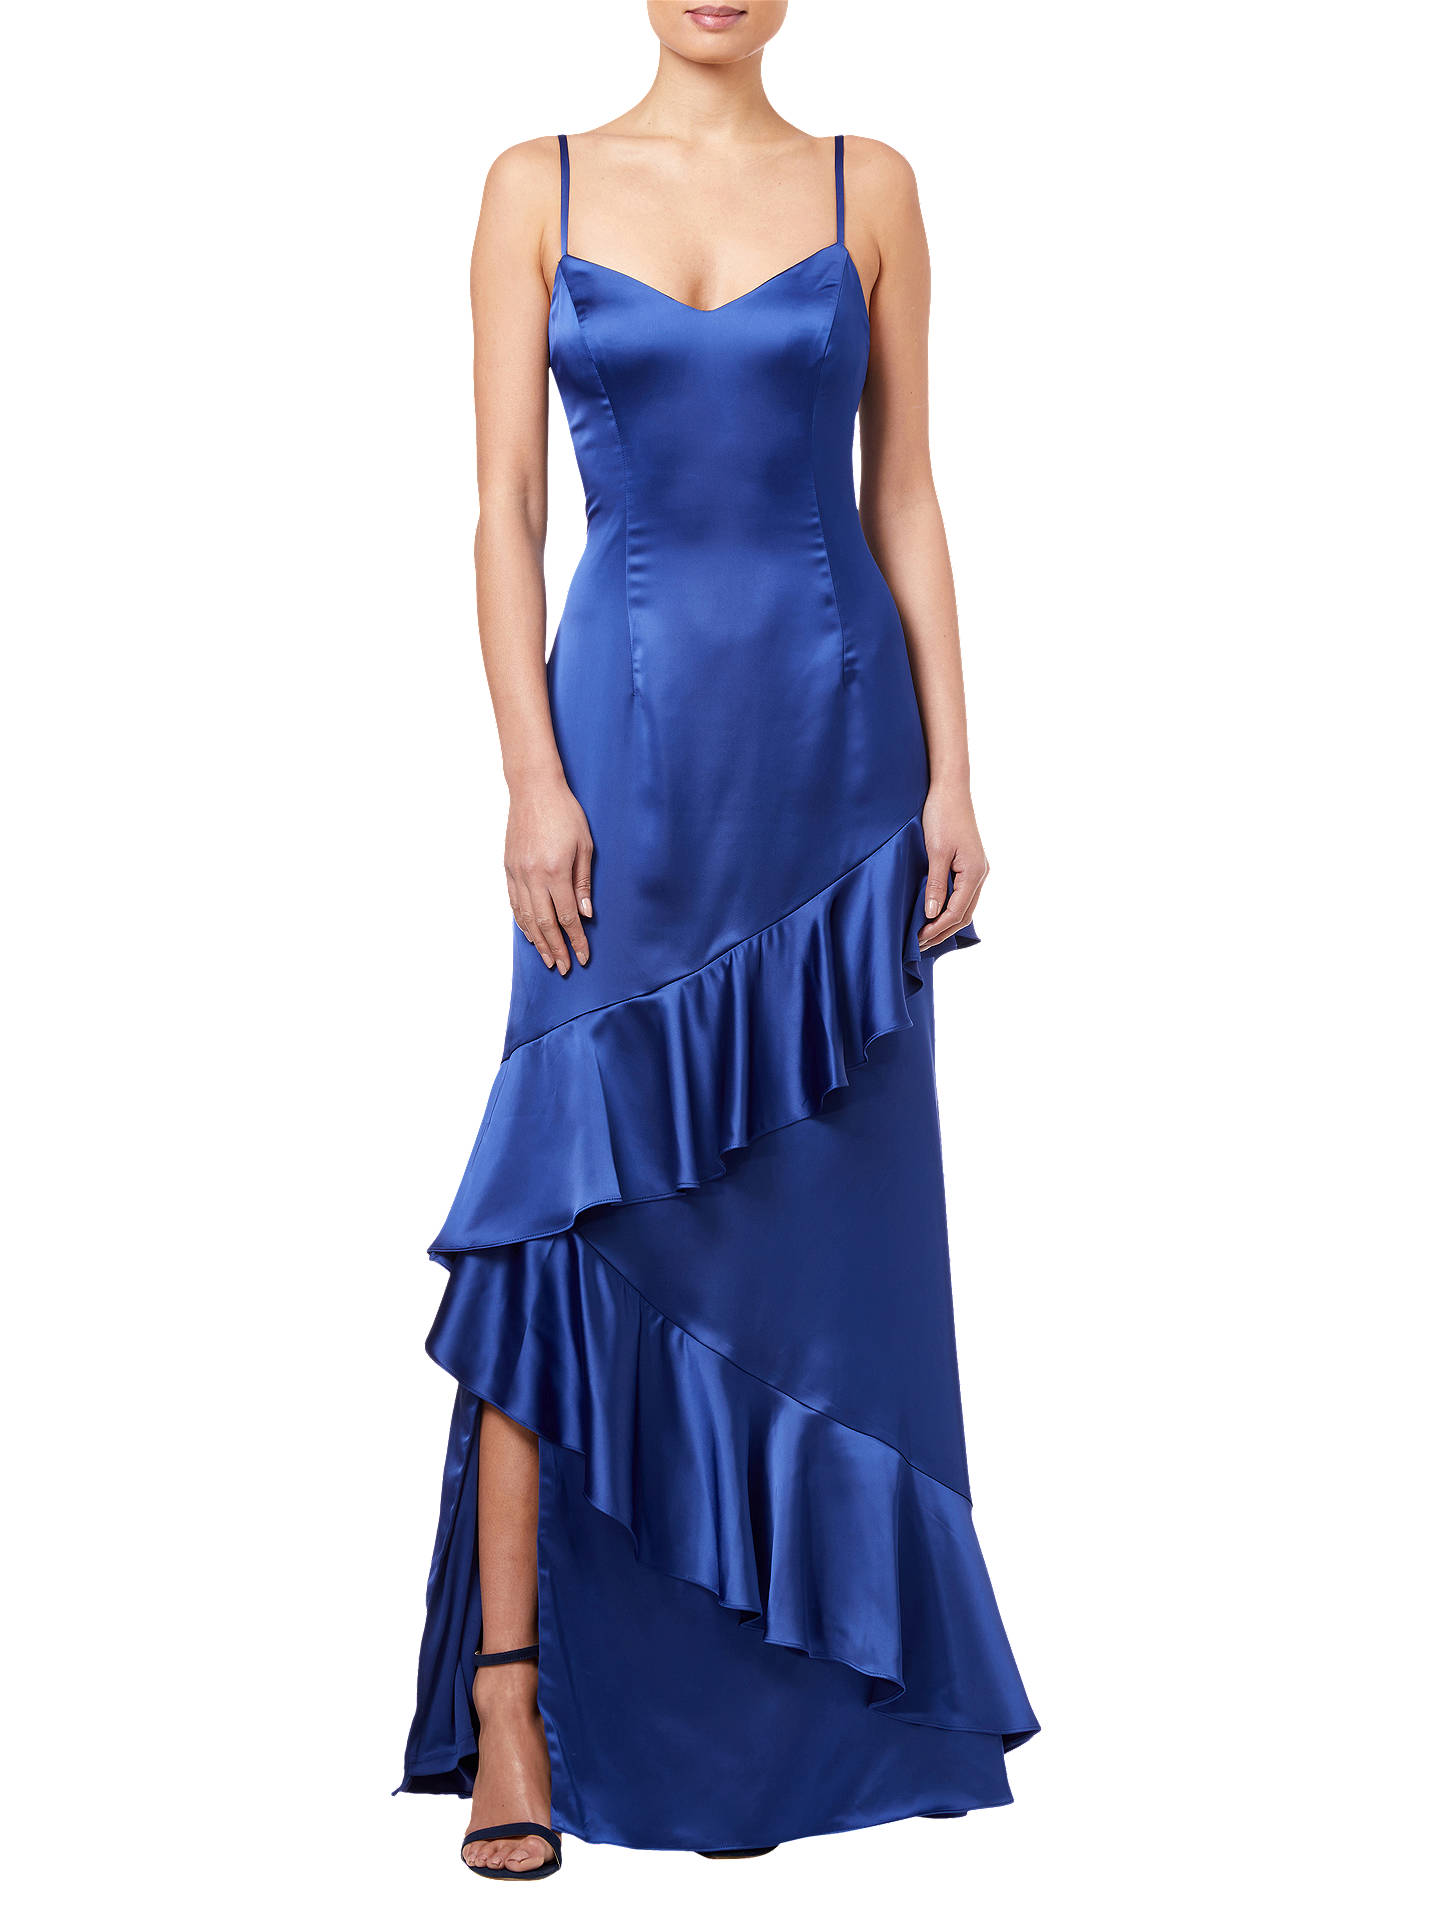 2317aa750fb Buy Adrianna Papell Ruffled Satin Dress, Blue Violet, 14 Online at  johnlewis.com ...